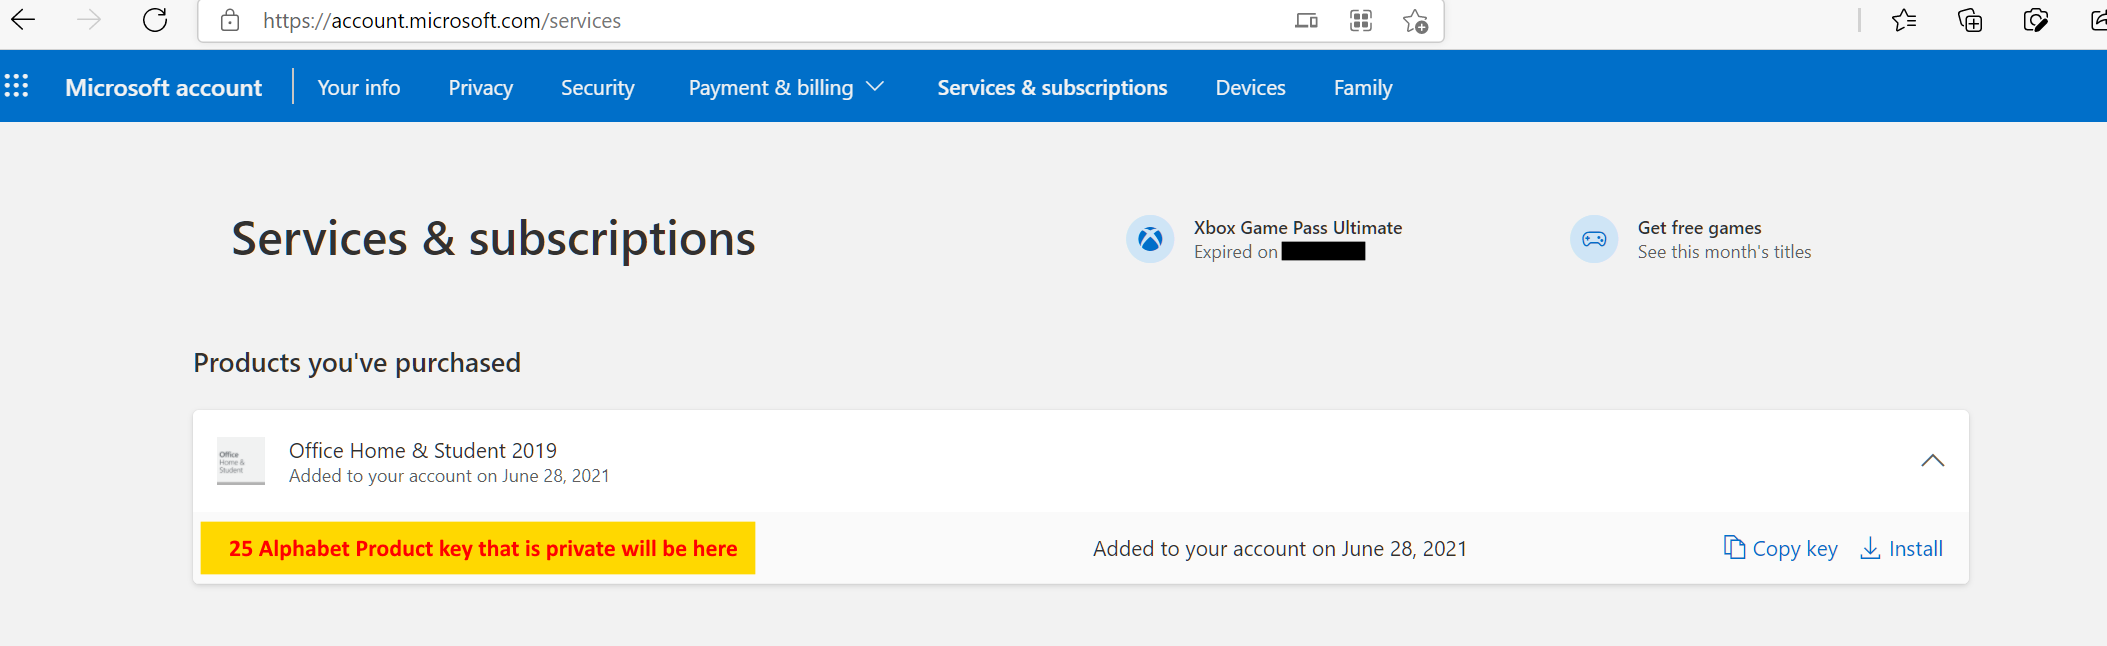 MIcrosoft Office Home and Student edition product key in Microsoft Accounts Services page